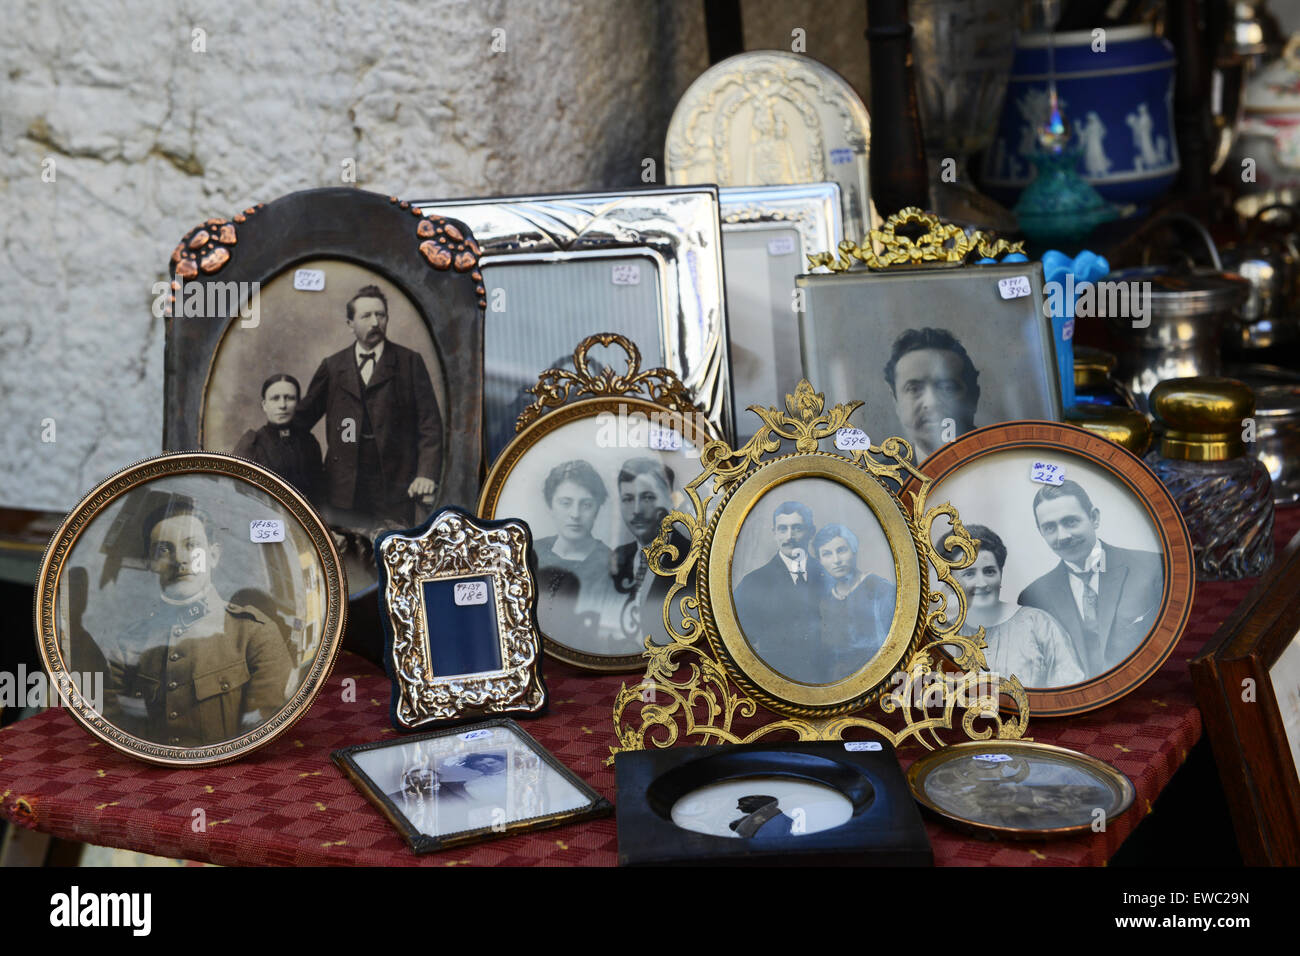 Old family portraits photographs for sale at Market - Stock Image